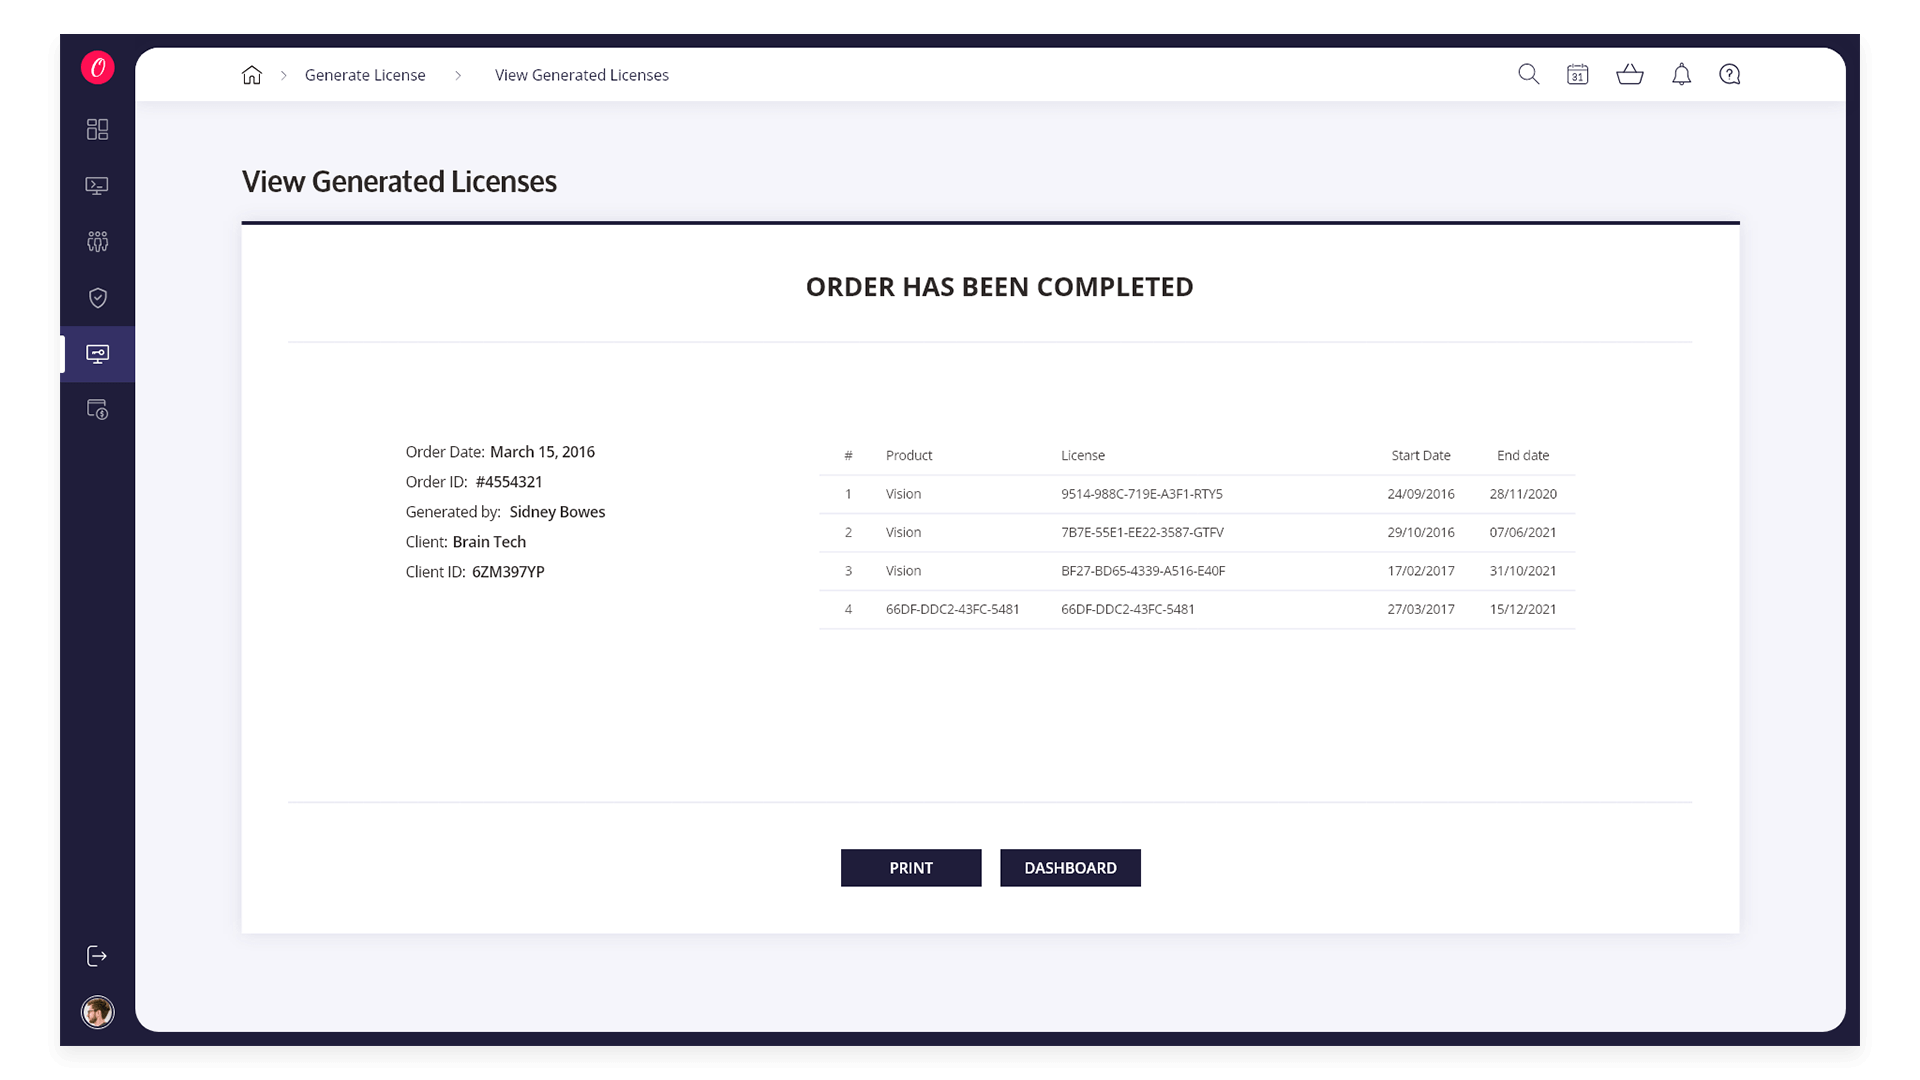 View Generated Licenses